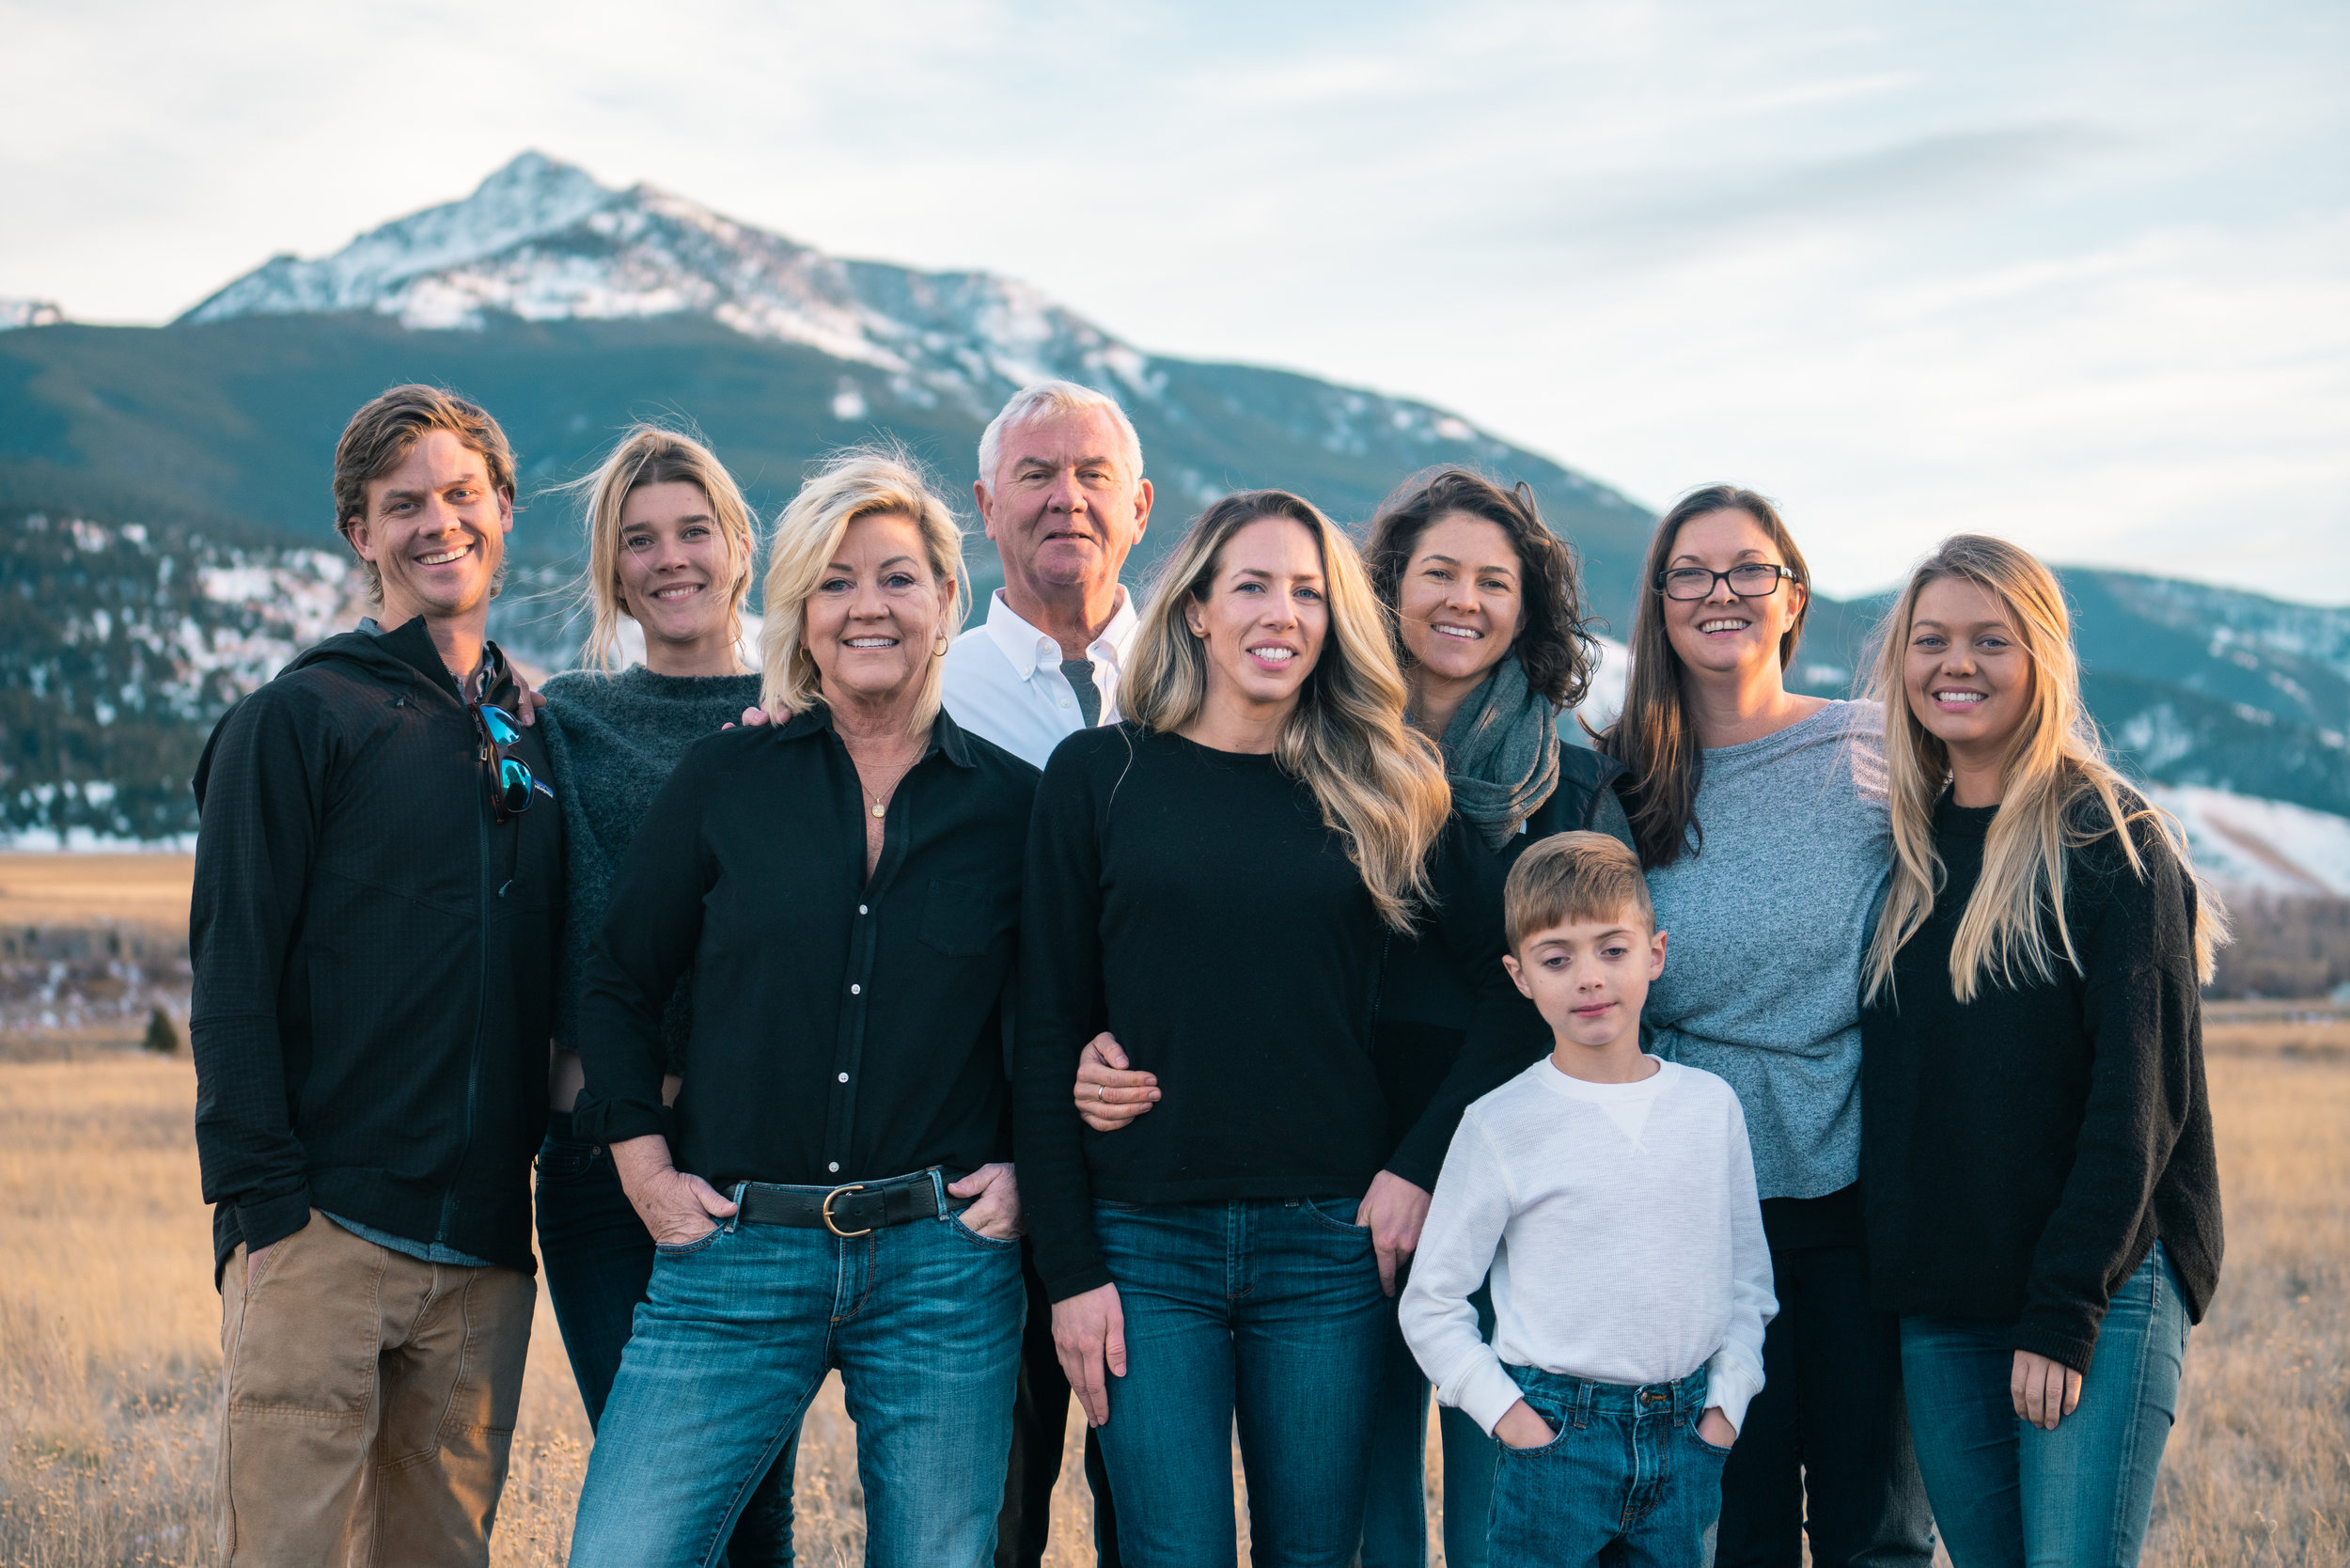 The Clougherty Family gets together for a portrait in Paradise Valley, Montana.